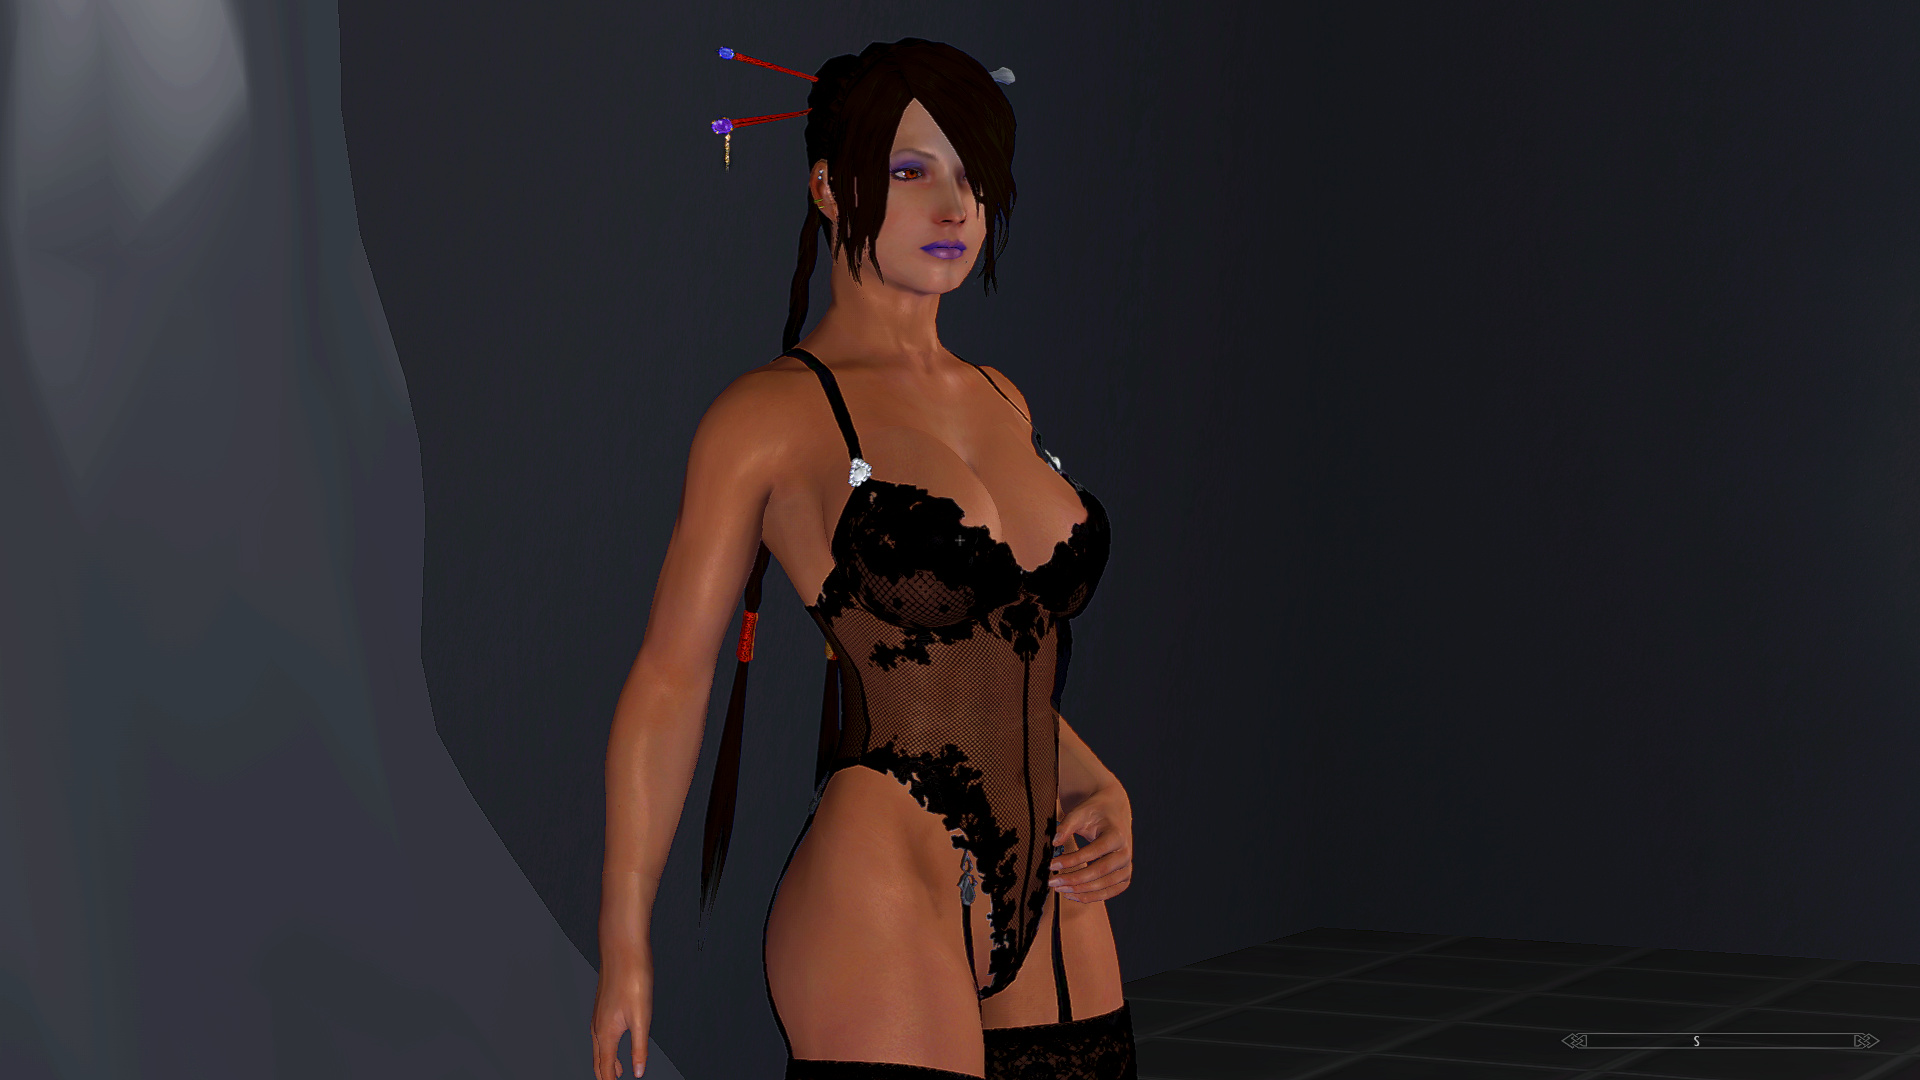 Video game nude patch gallery sexy photos